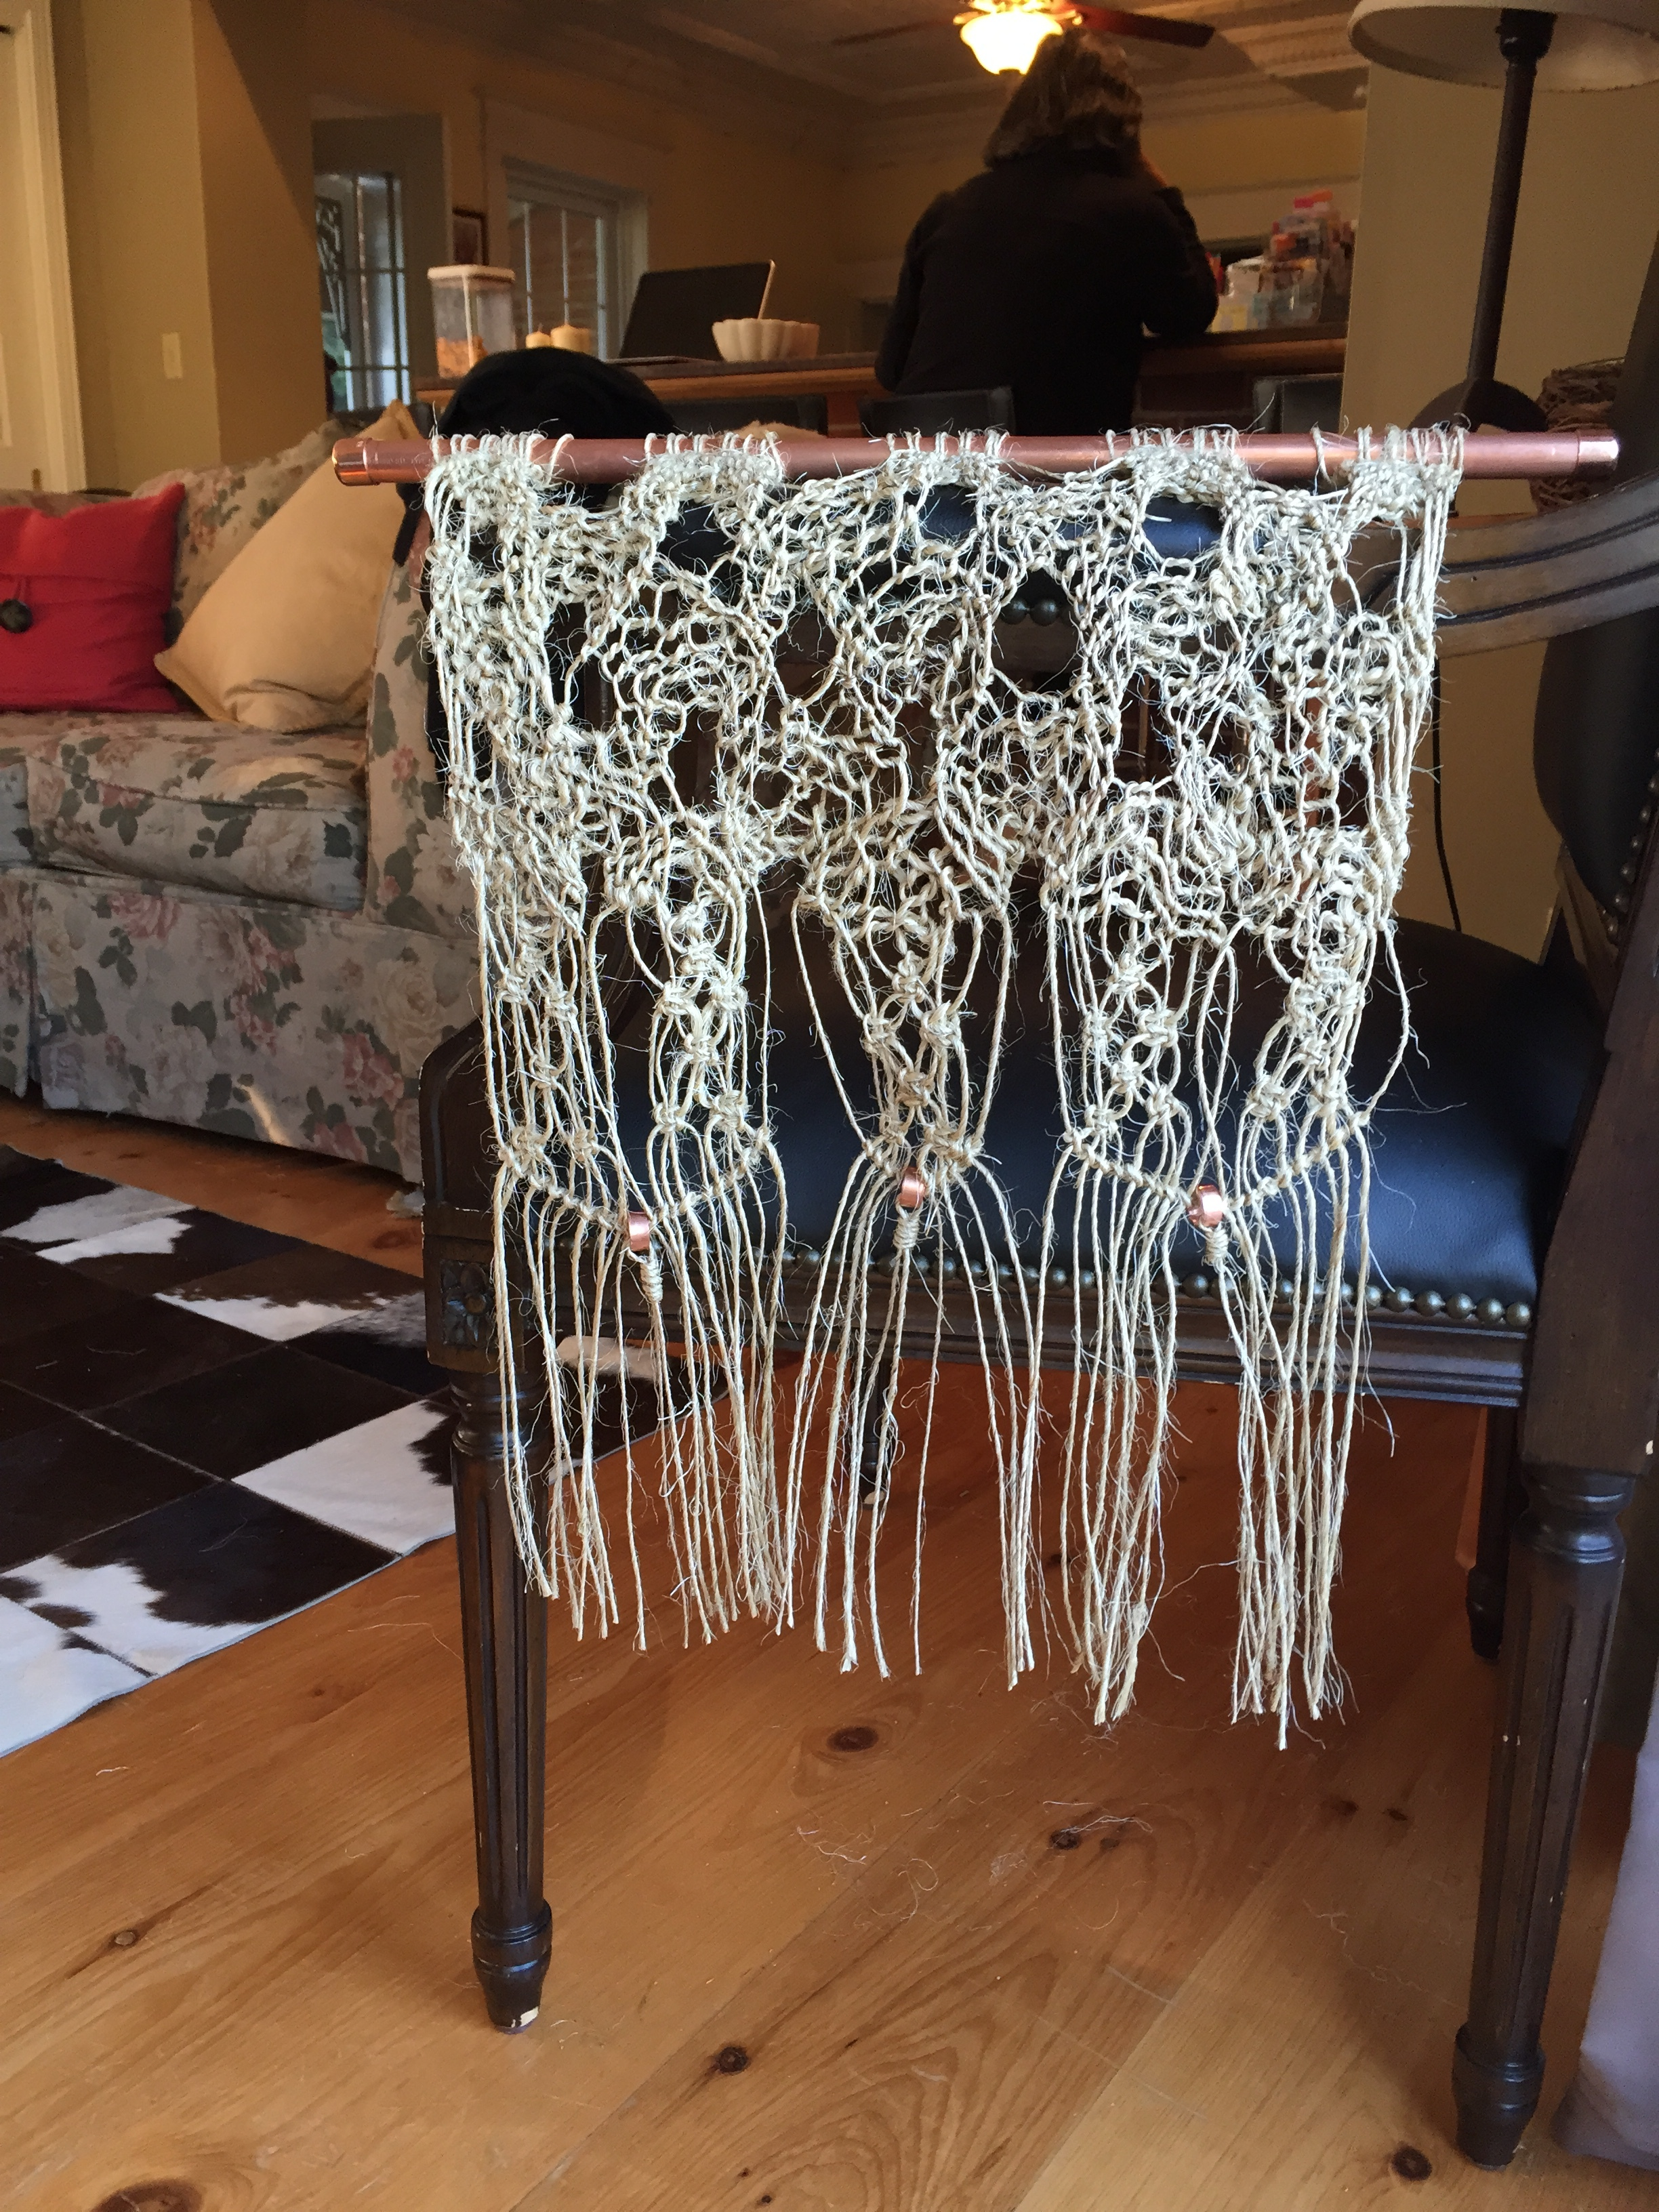 Completed macrame project